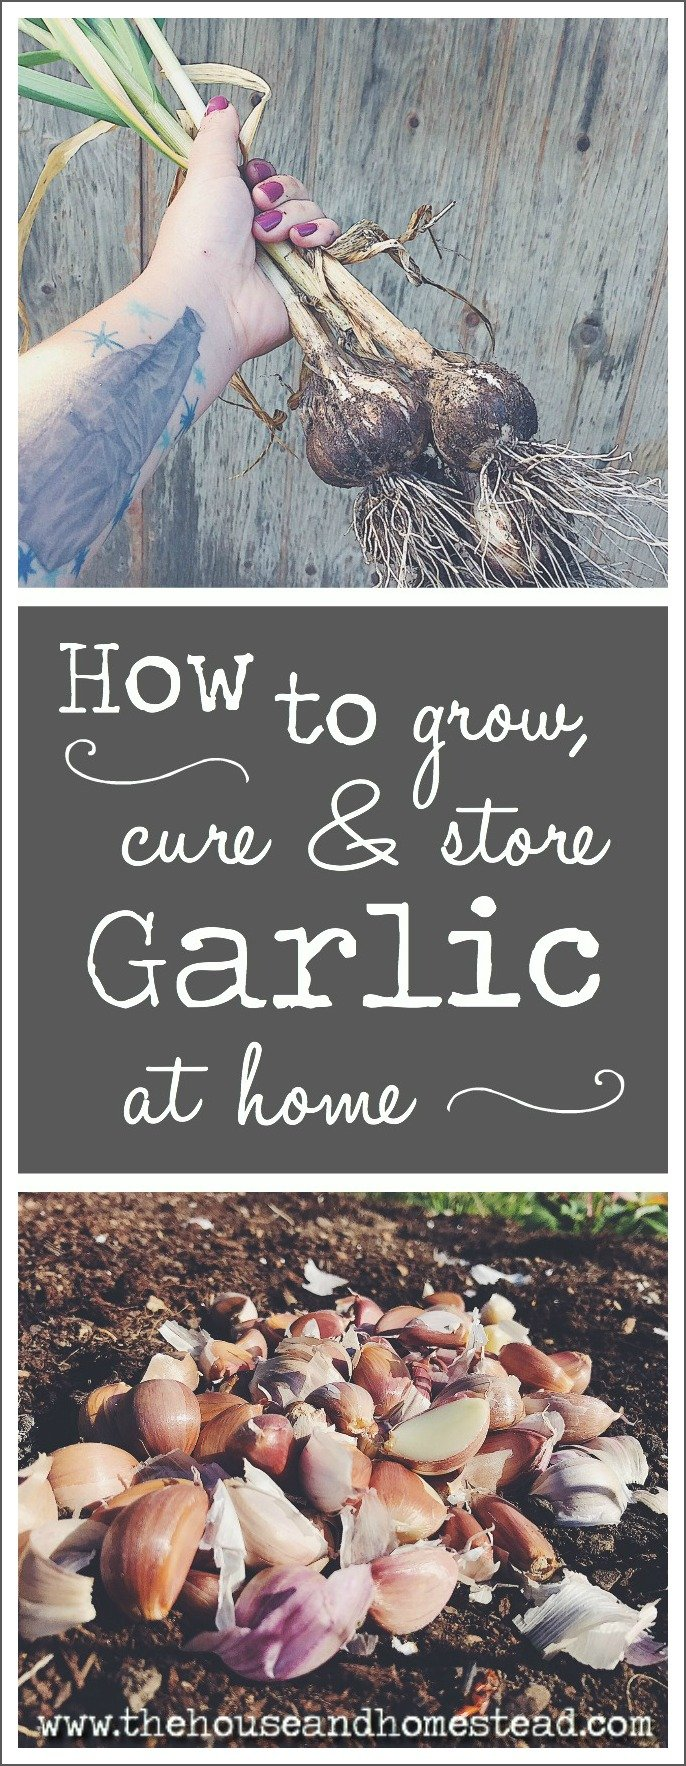 Garlic is one of the easiest crops to grow at home, and growing it yourself means you can be sure you're reaping the full health benefits of garlic while ensuring your garlic is safe and natural. Learn how to grow, cure and store garlic at home for good eating all year long!